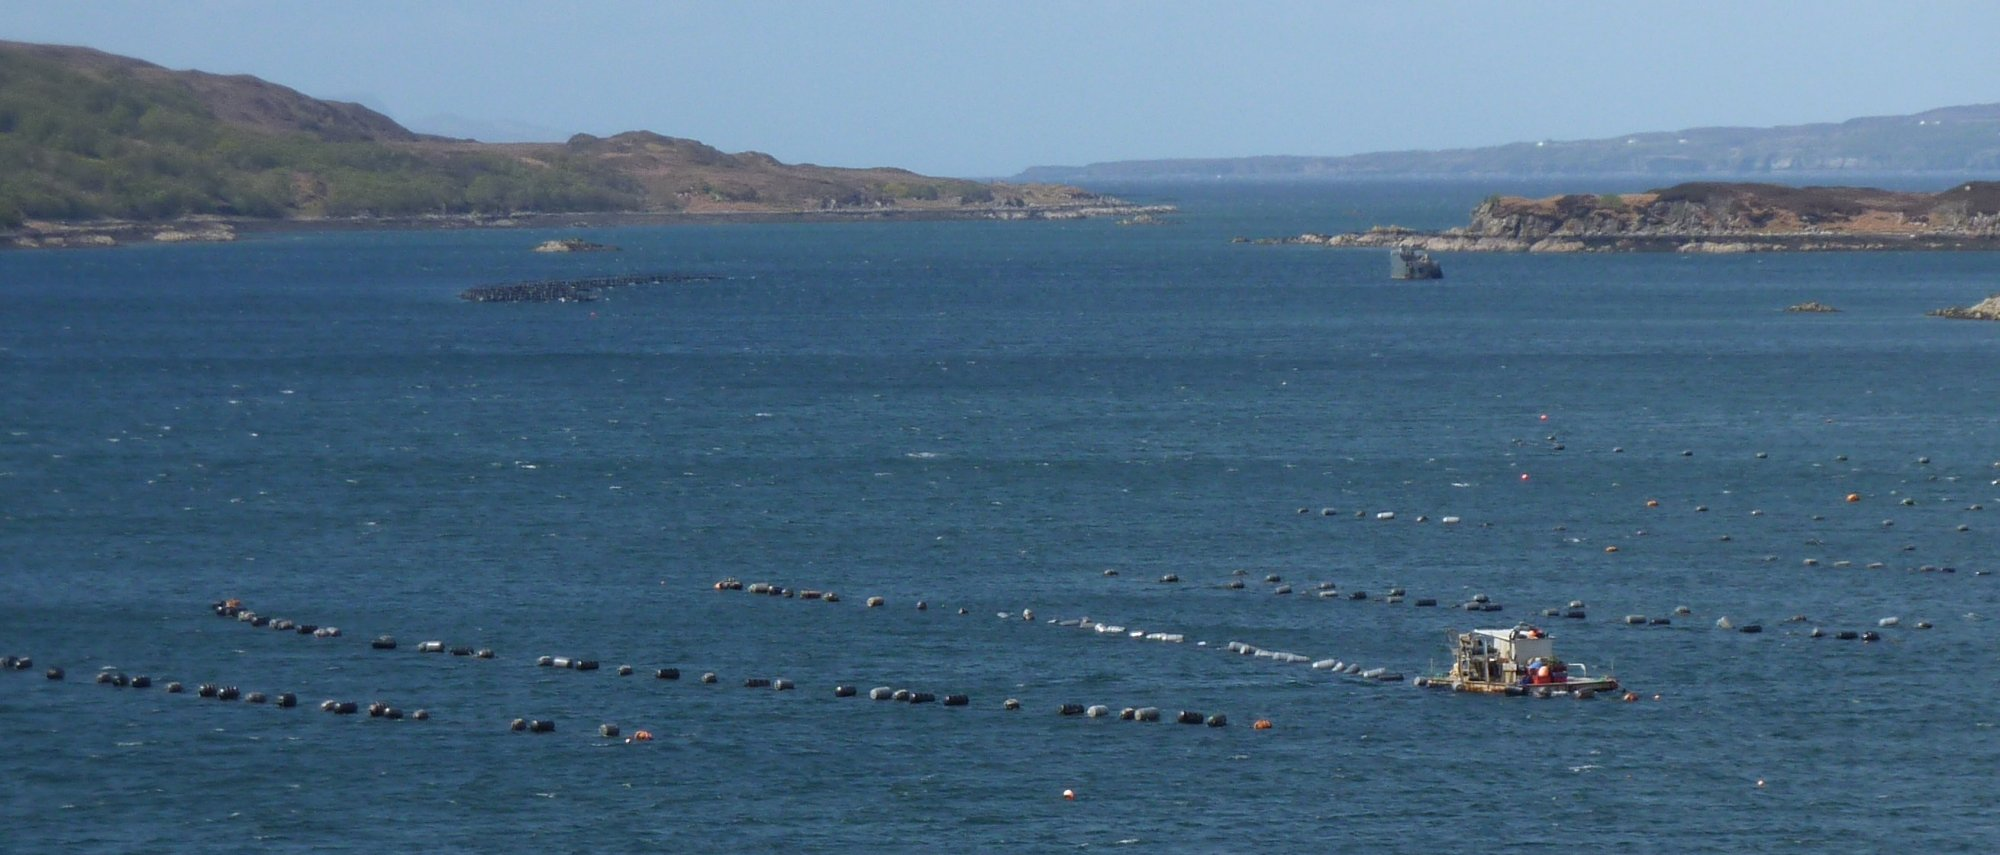 The mussel lines in the loch, with attendant vessel